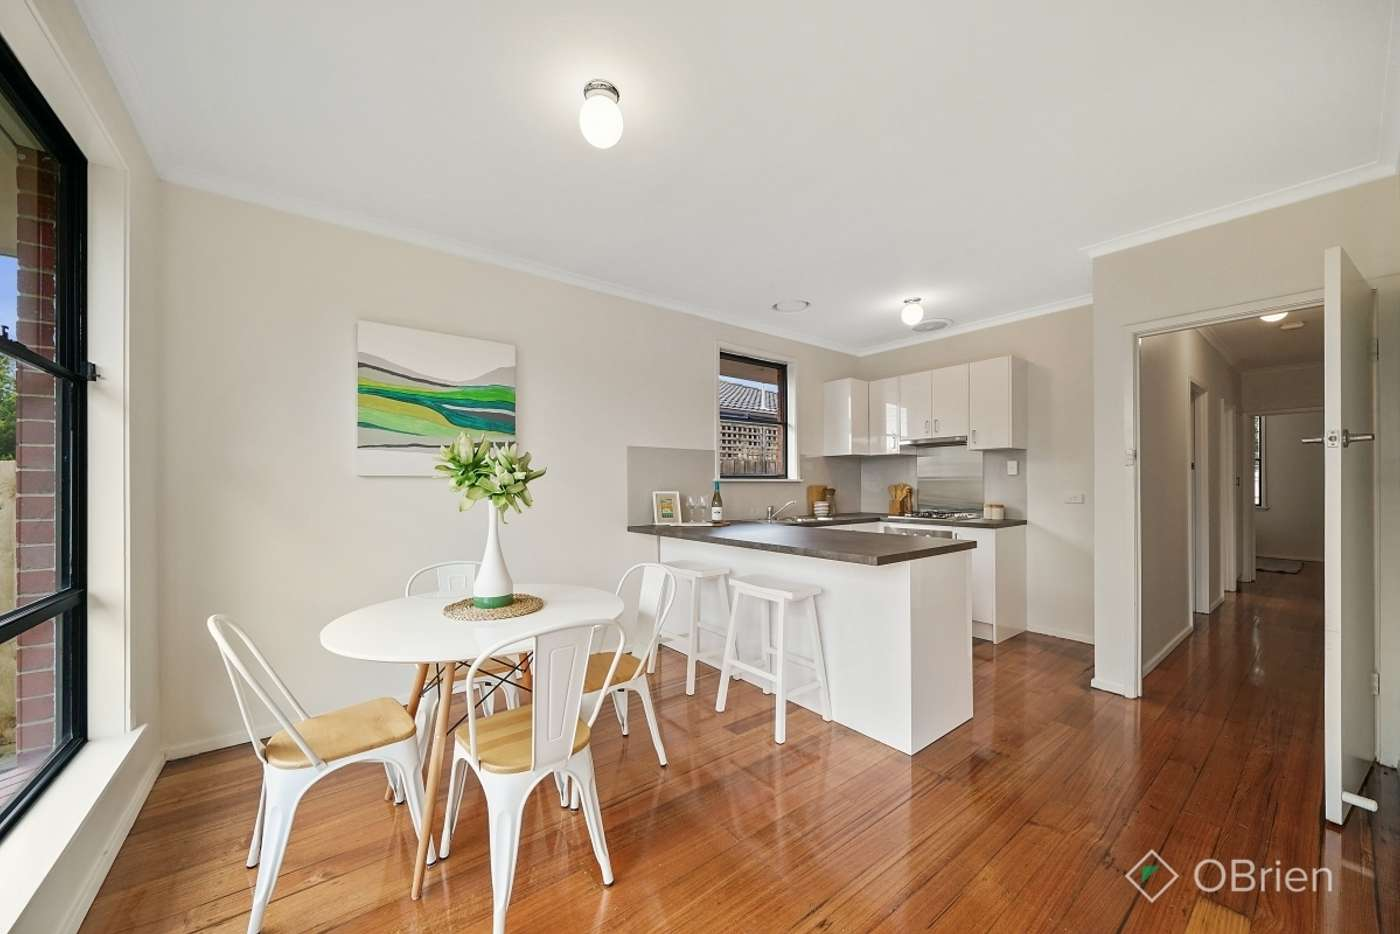 Sixth view of Homely house listing, 9 Ash Court, Hastings VIC 3915